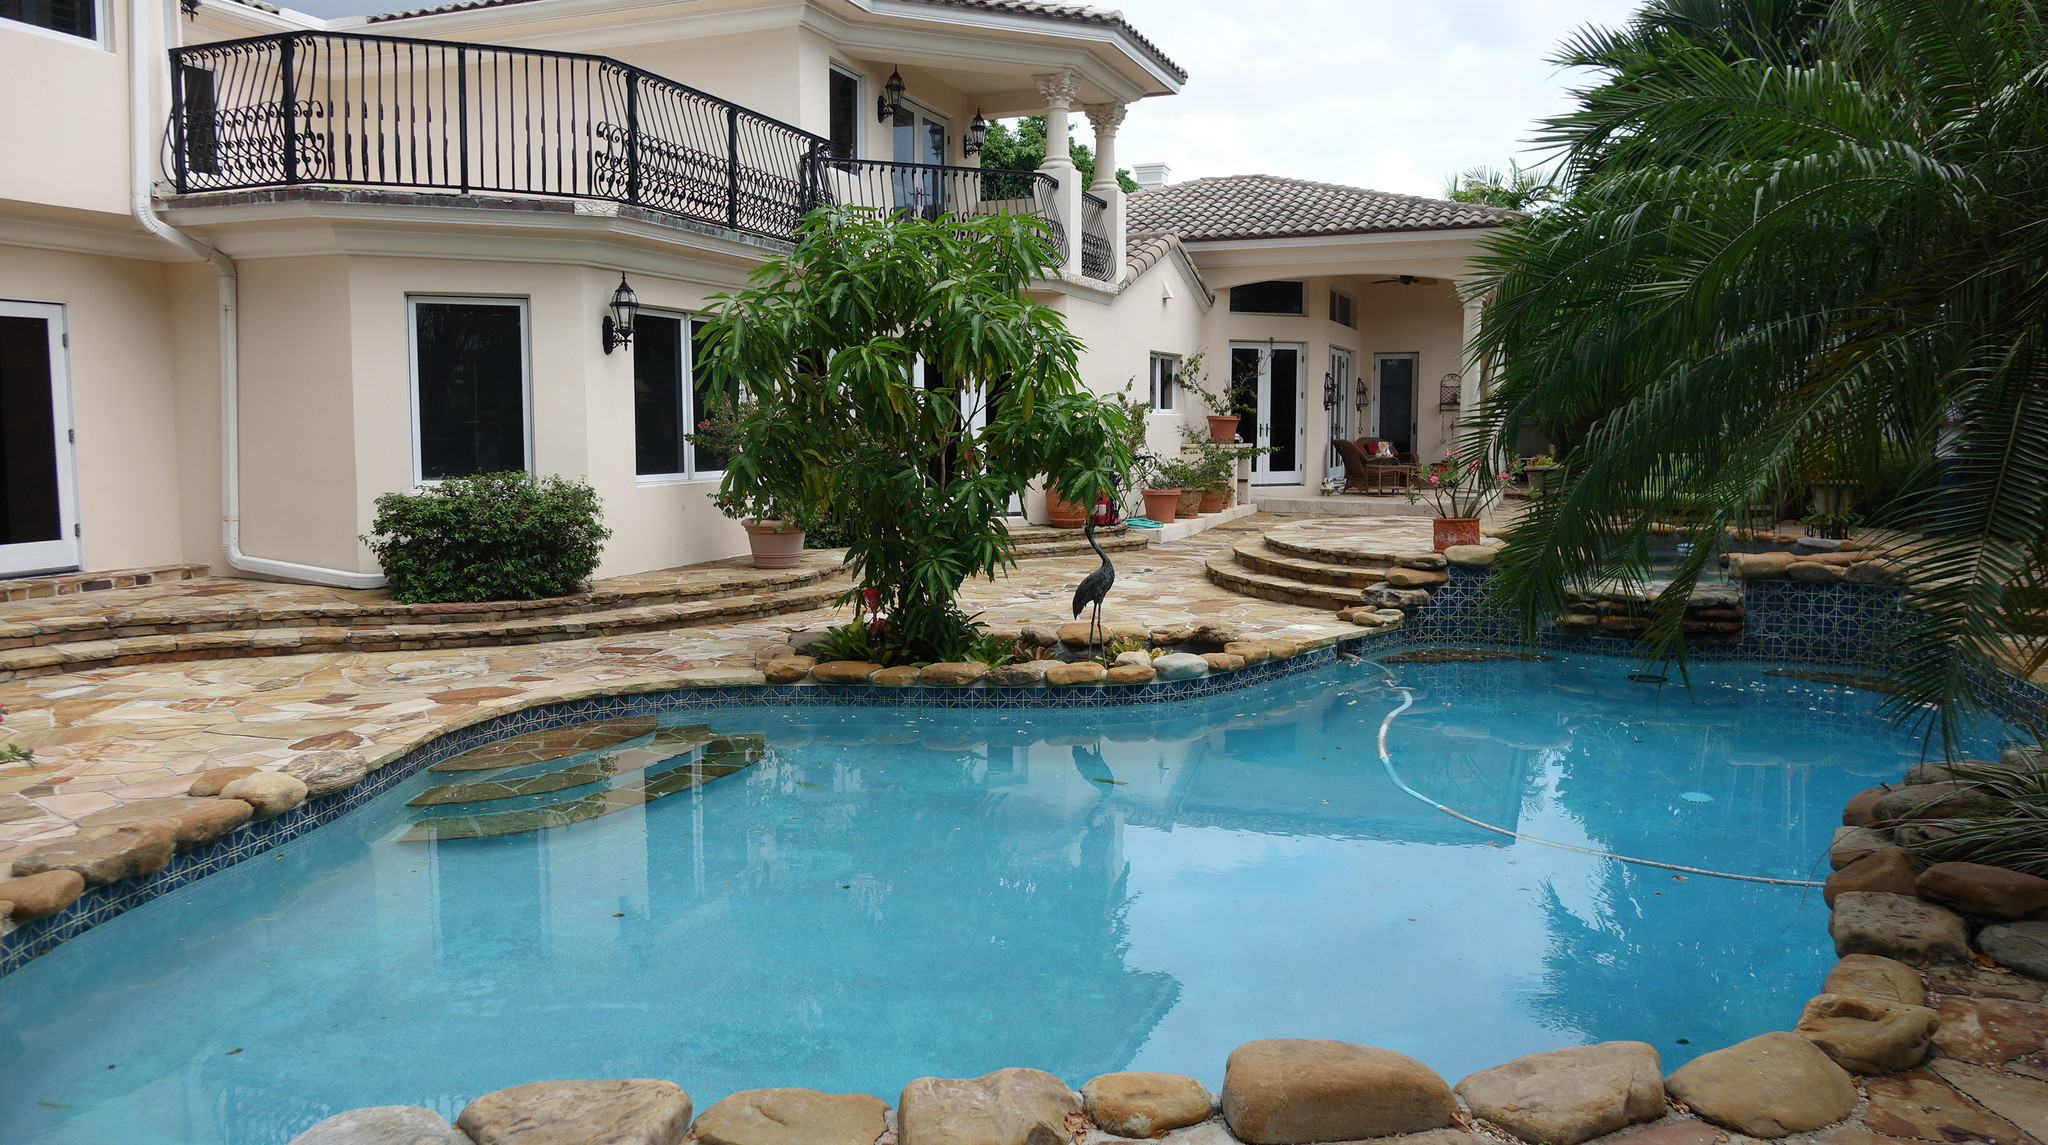 David Cassidy Home Being Sold For 1 8 Million Sun Sentinel